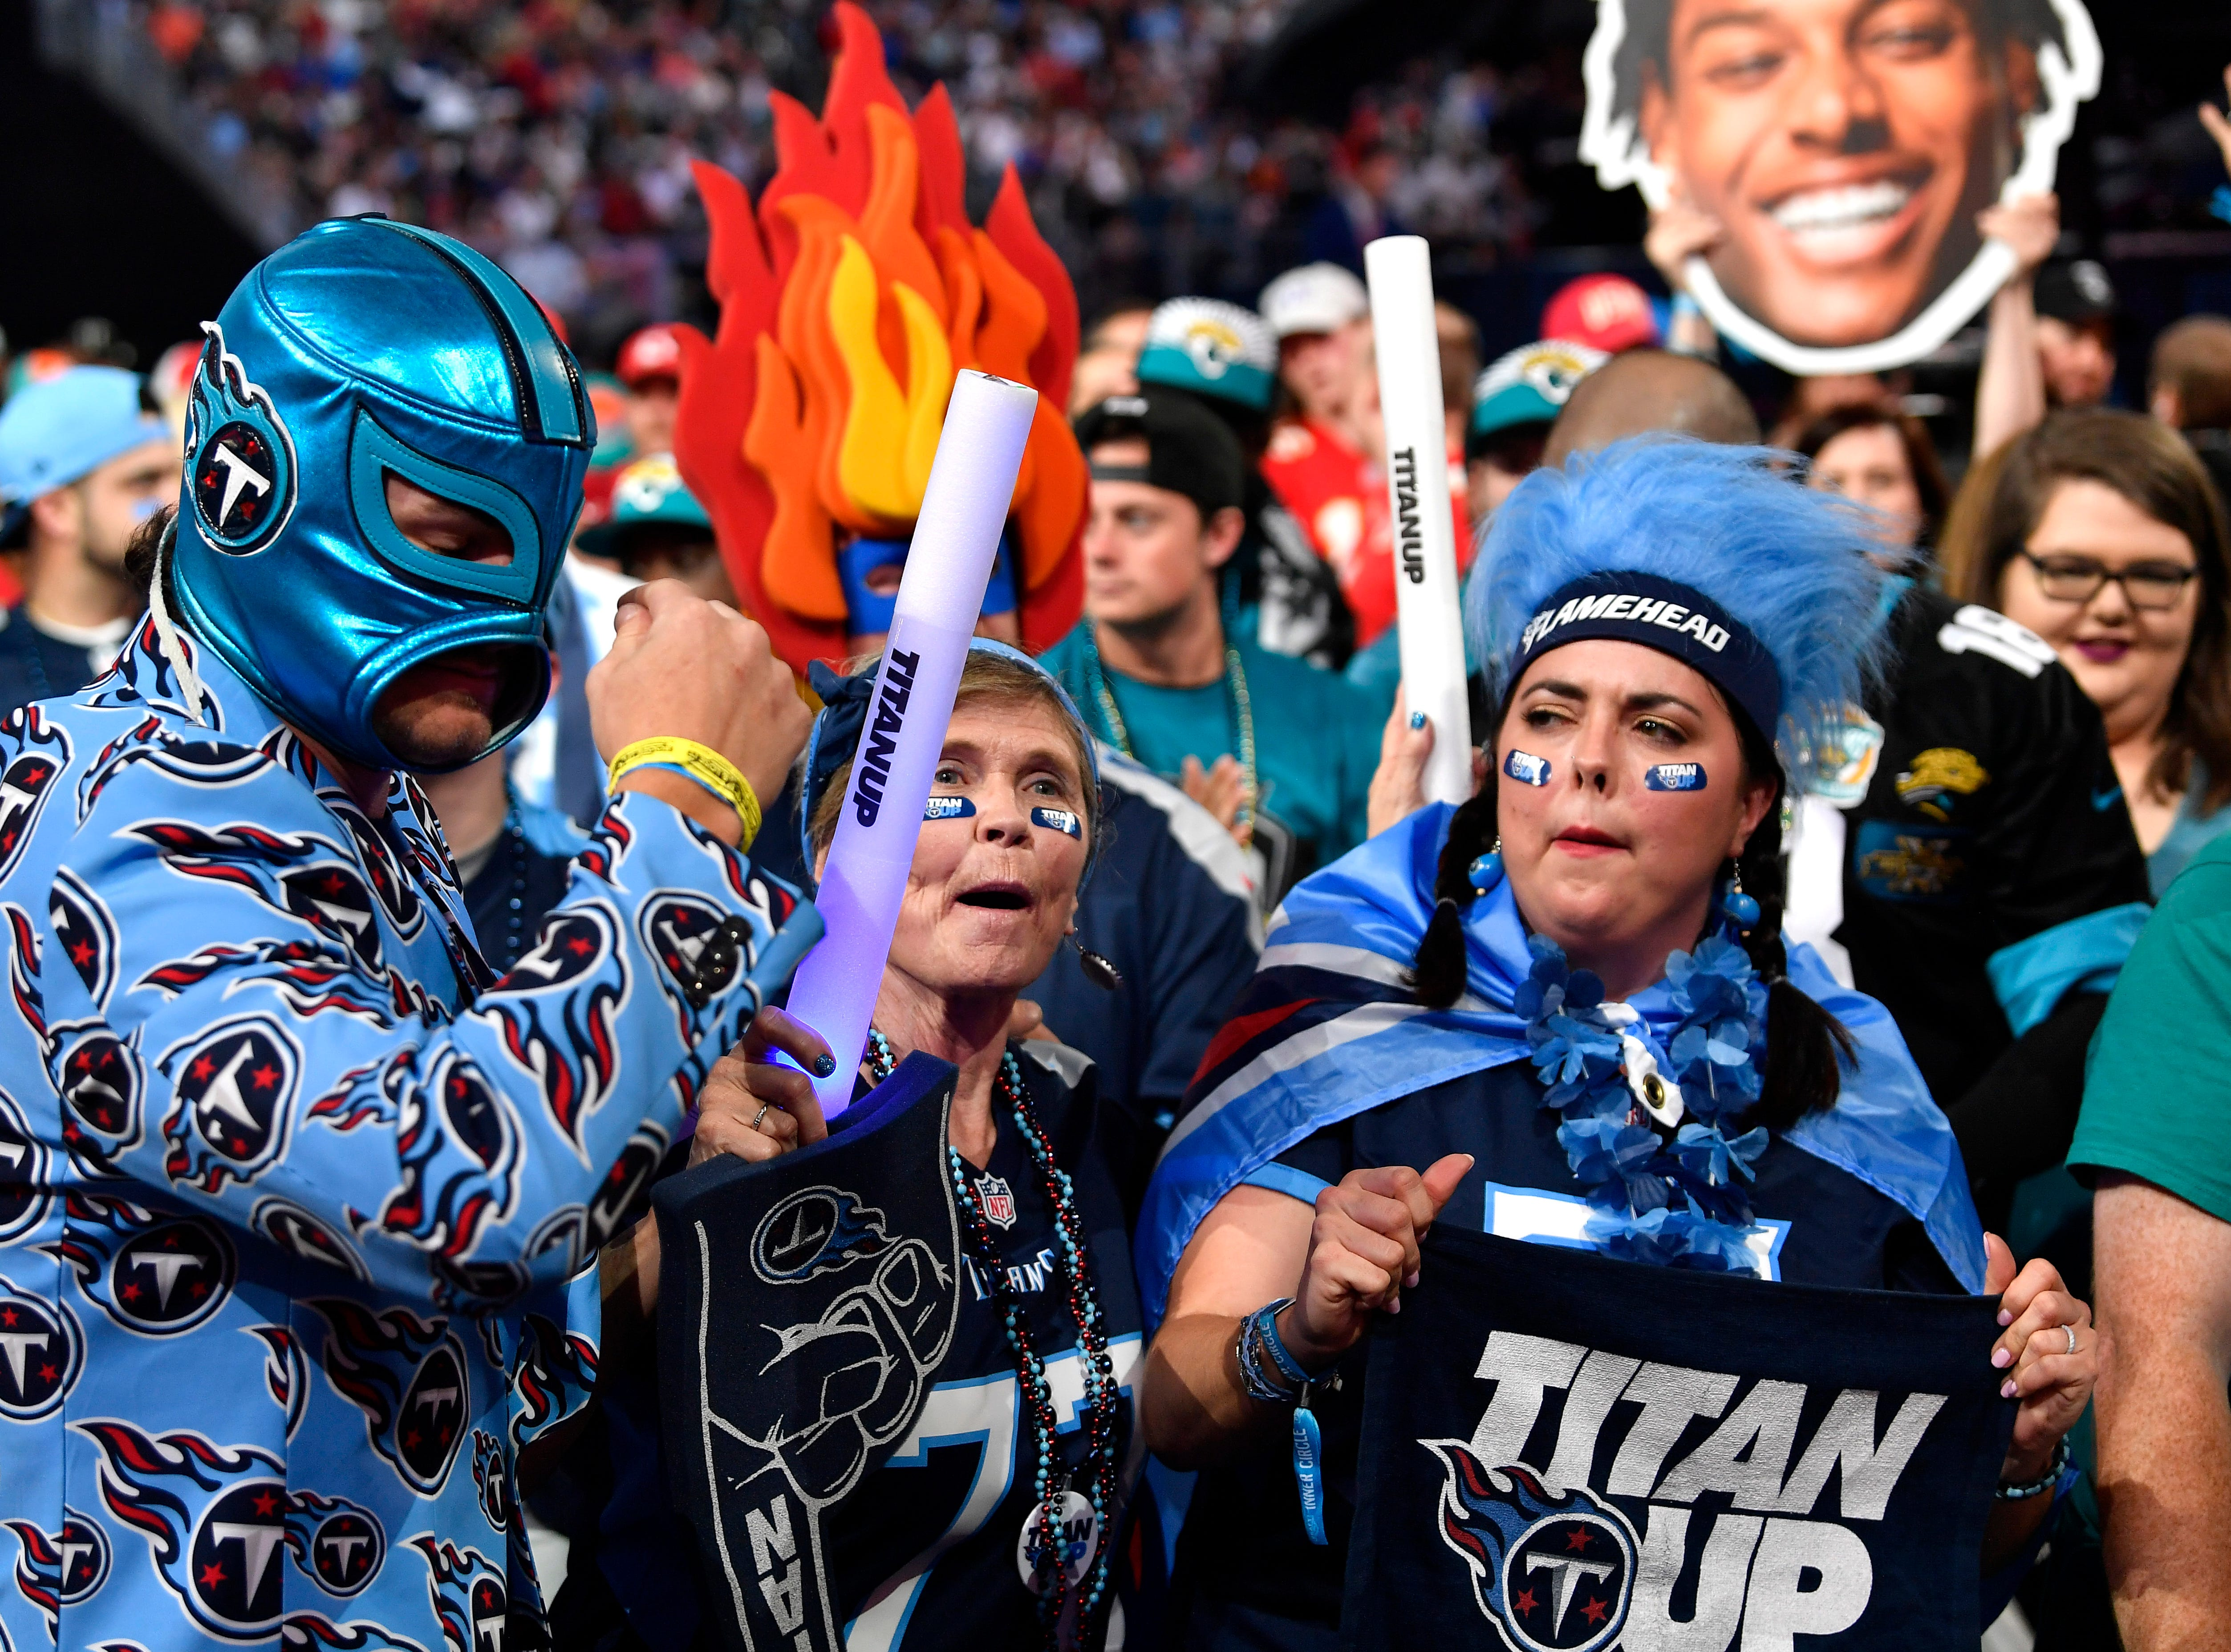 Titans fans wait for their pick during the first round of the NFL Draft Thursday, April 25, 2019, in Nashville, Tenn.